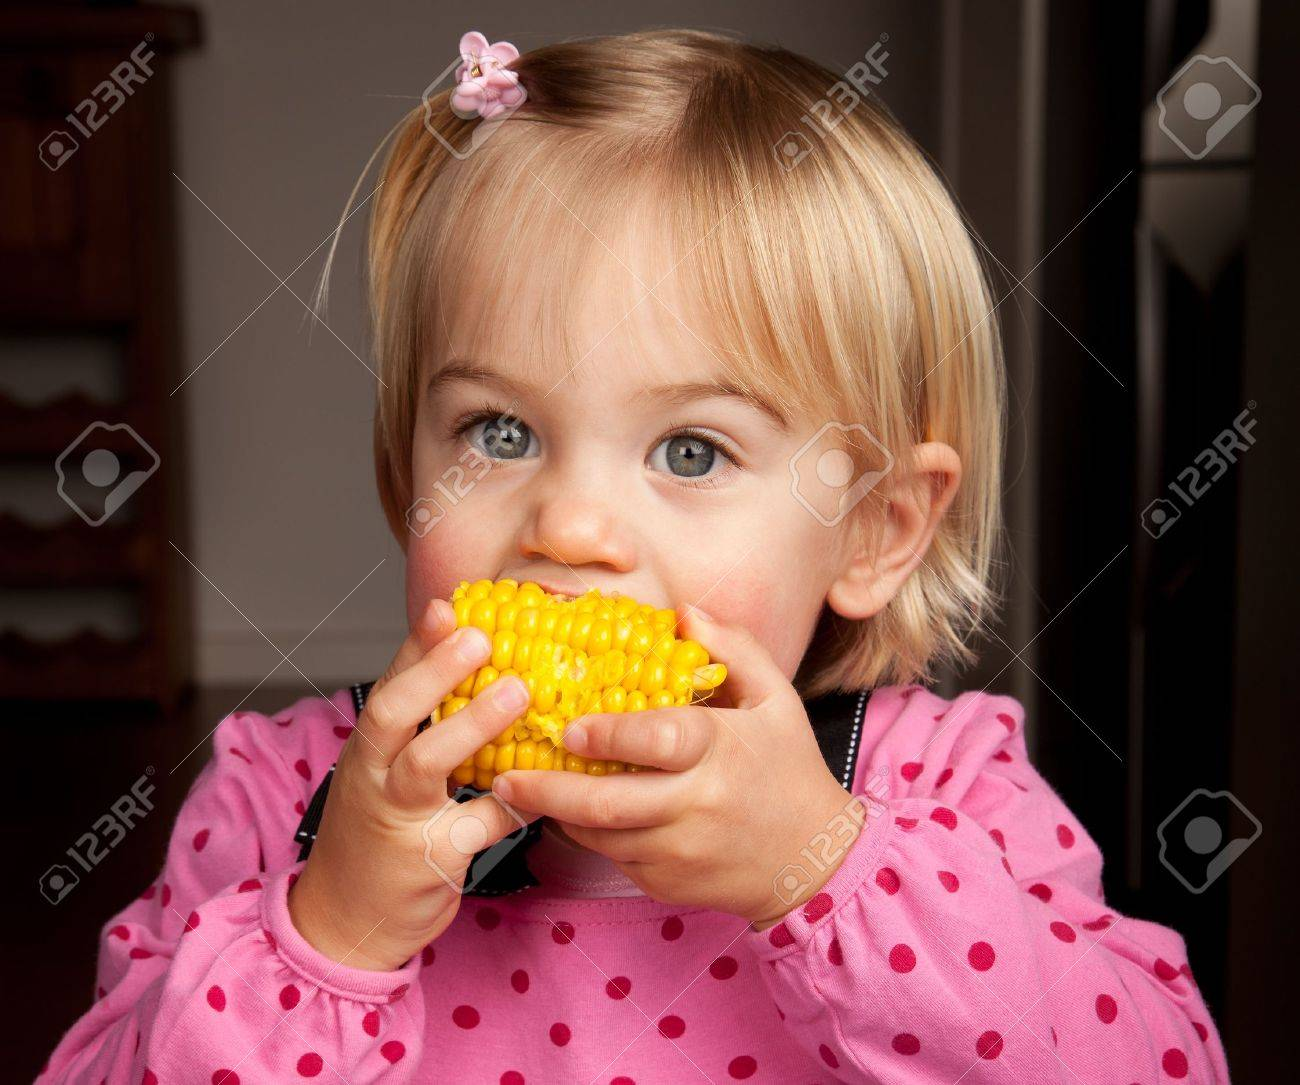 Closeup of a little girl taking a bite out of a corn on the cob - 10385555